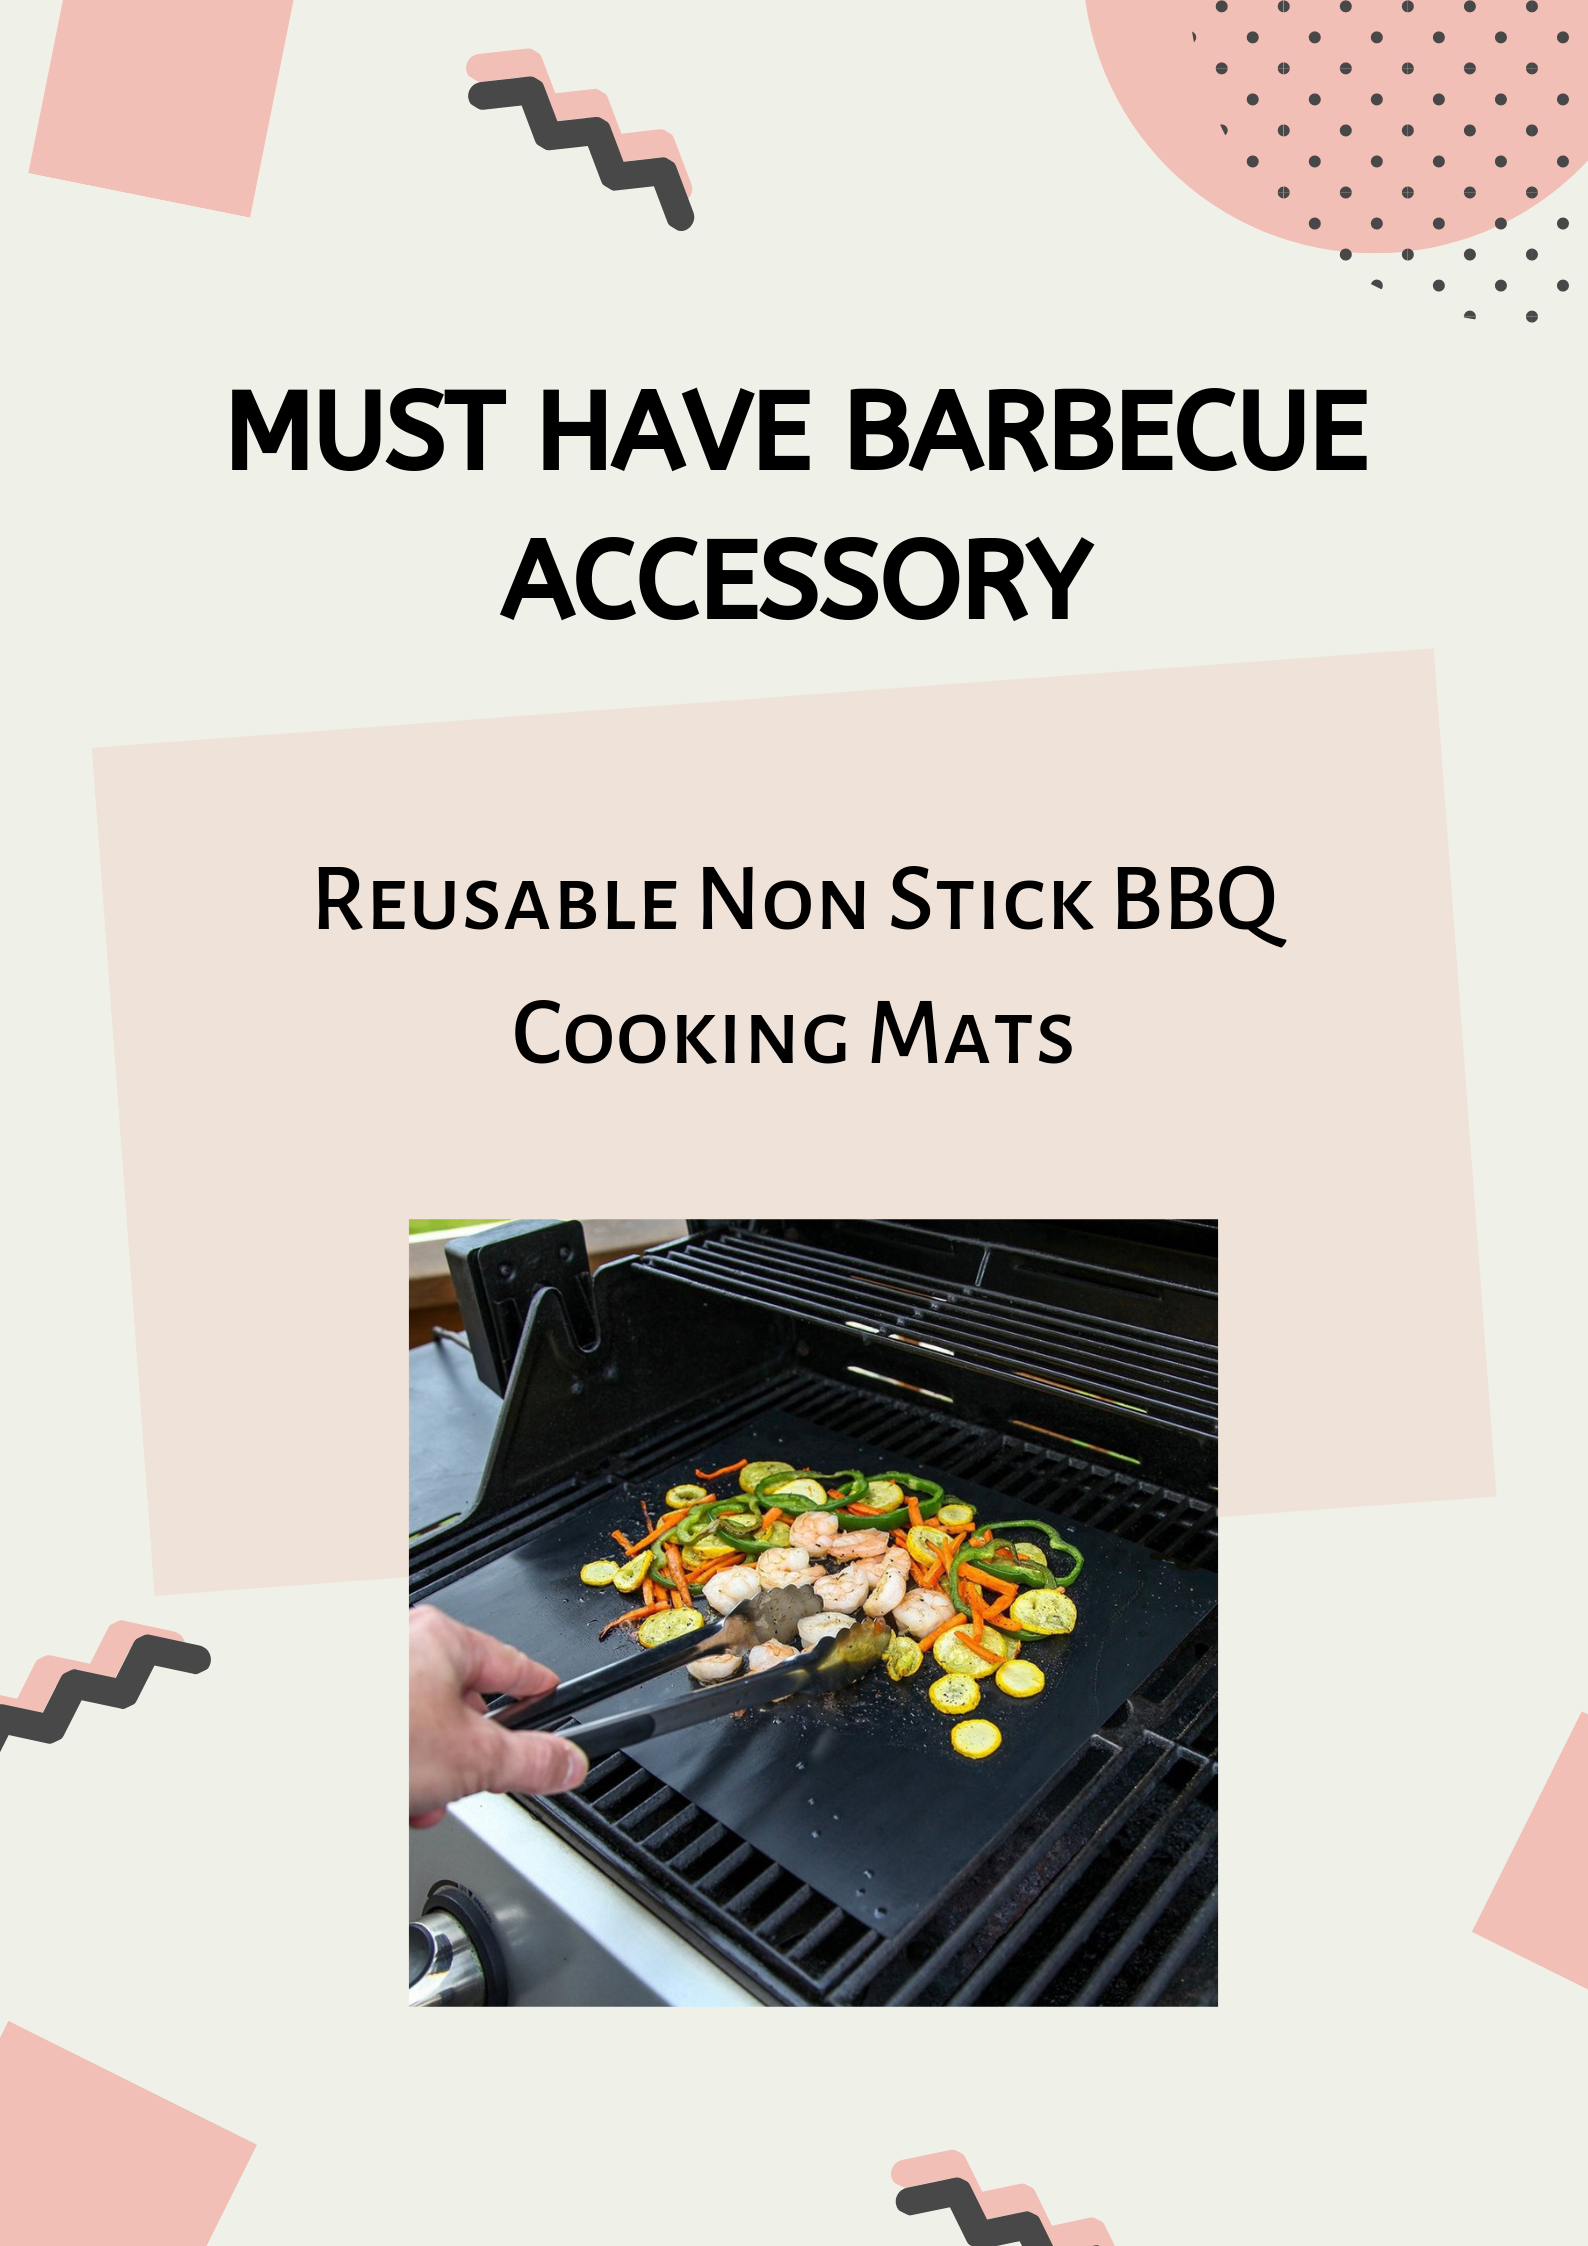 Heavy Duty Reusable Non Stick BBQ Cooking And Baking Mats